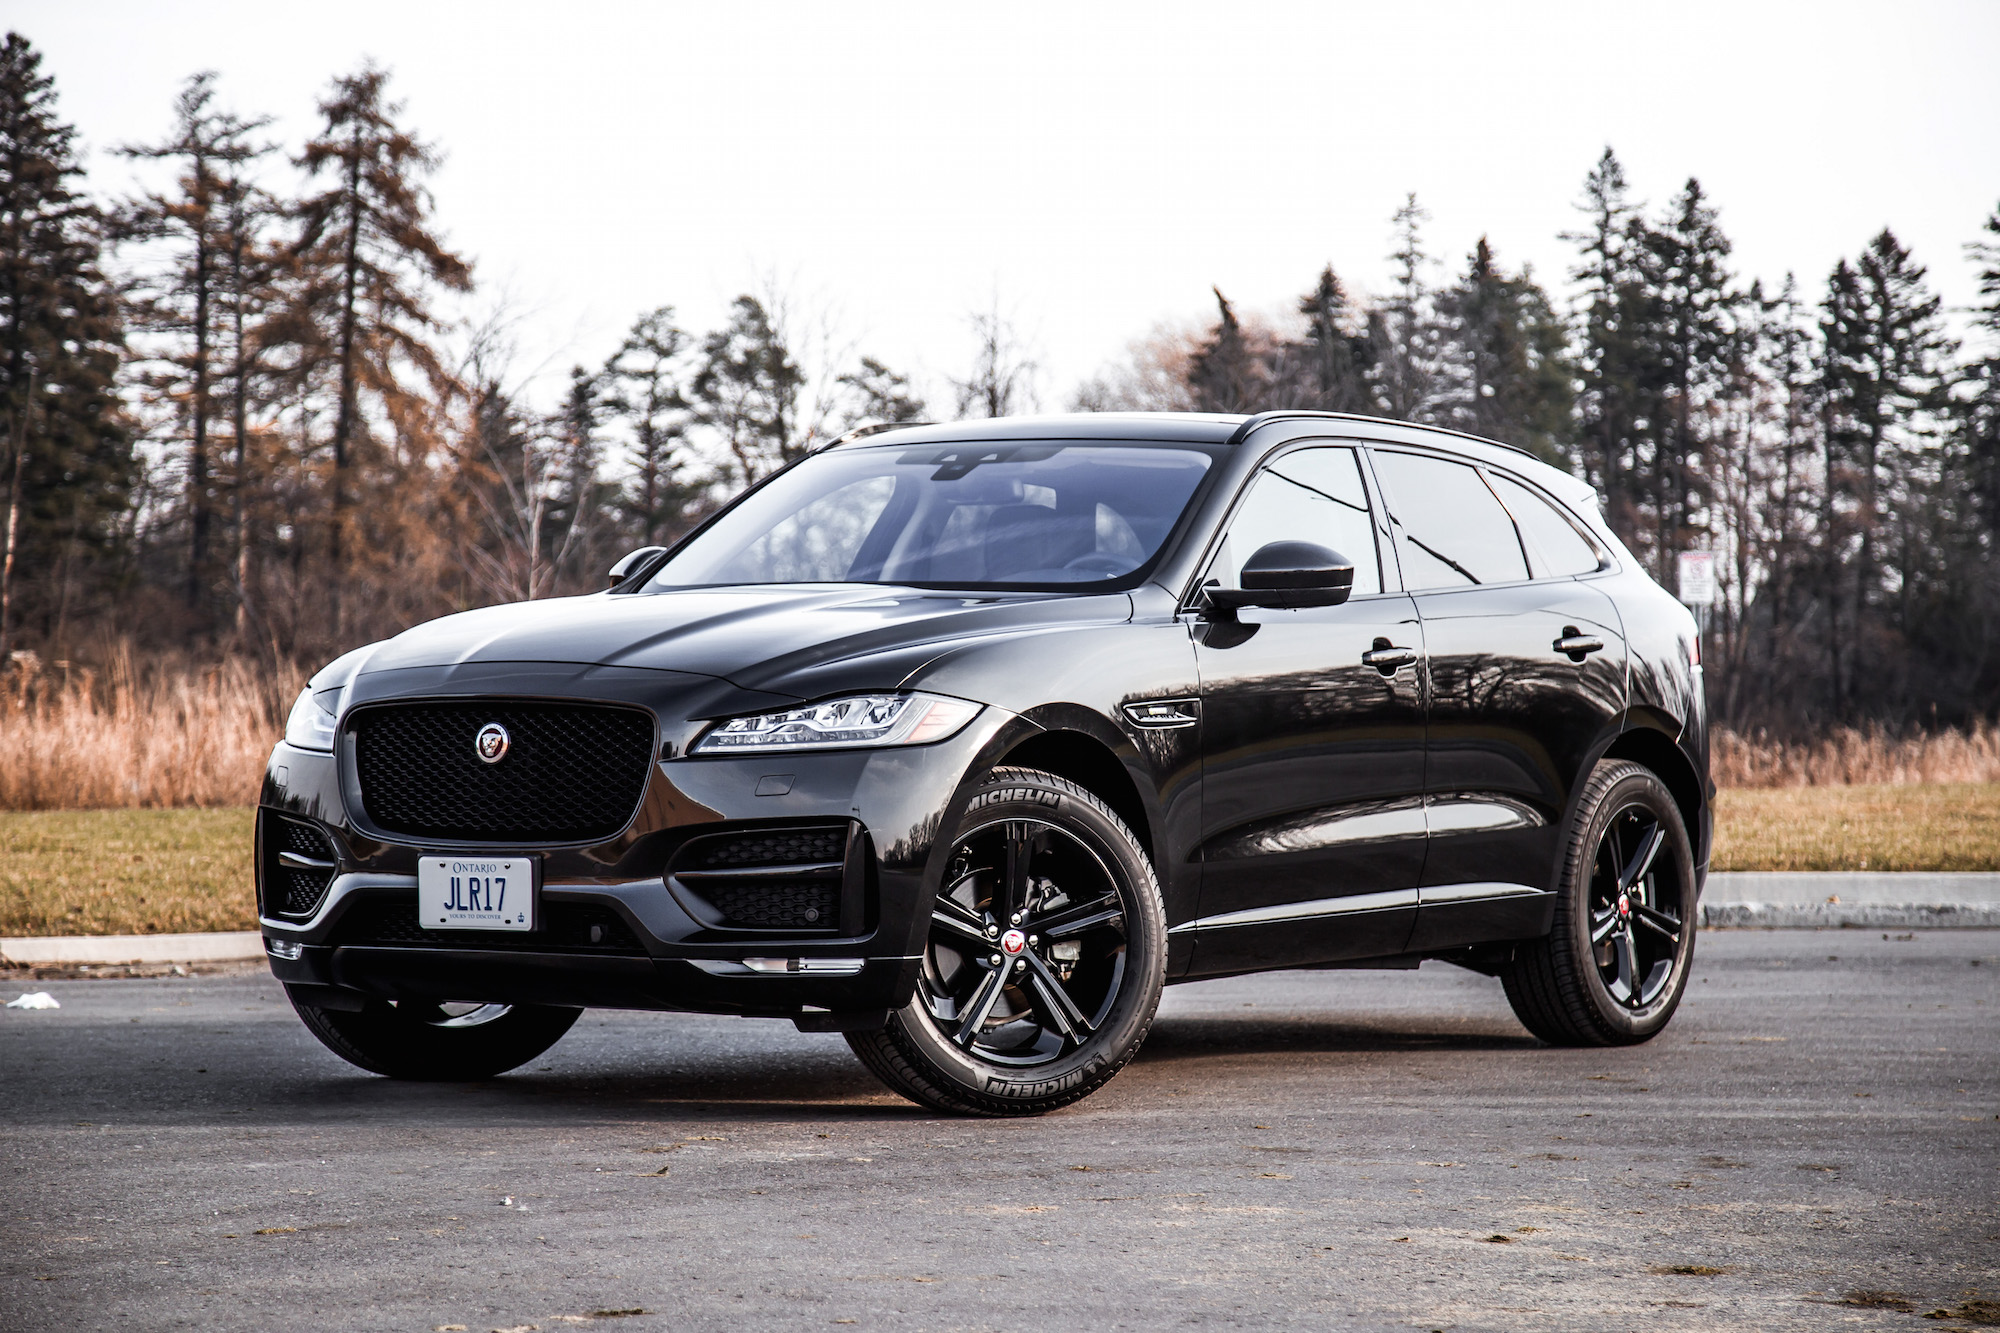 2018 Jaguar F Pace 20d Review Canadian Auto Review